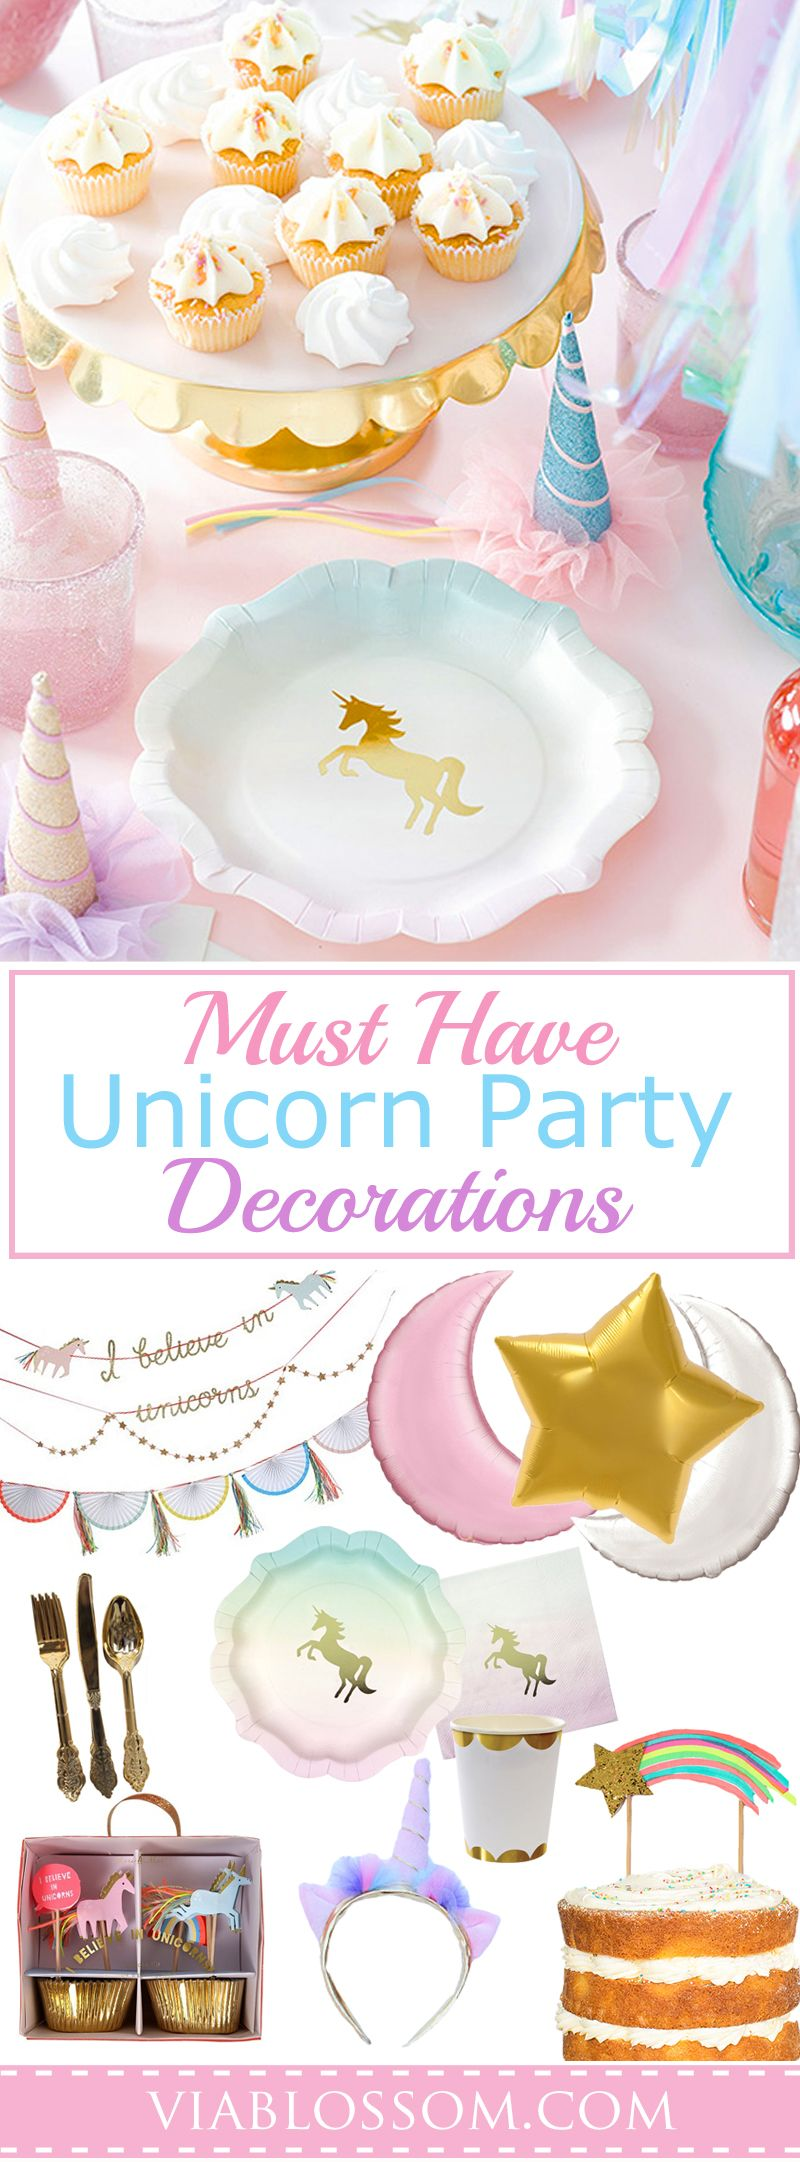 You will love our must have Unicorn Party Decorations for a magical girl birthday party!  All the Unicorn Party Ideas in one place for easy party planning!